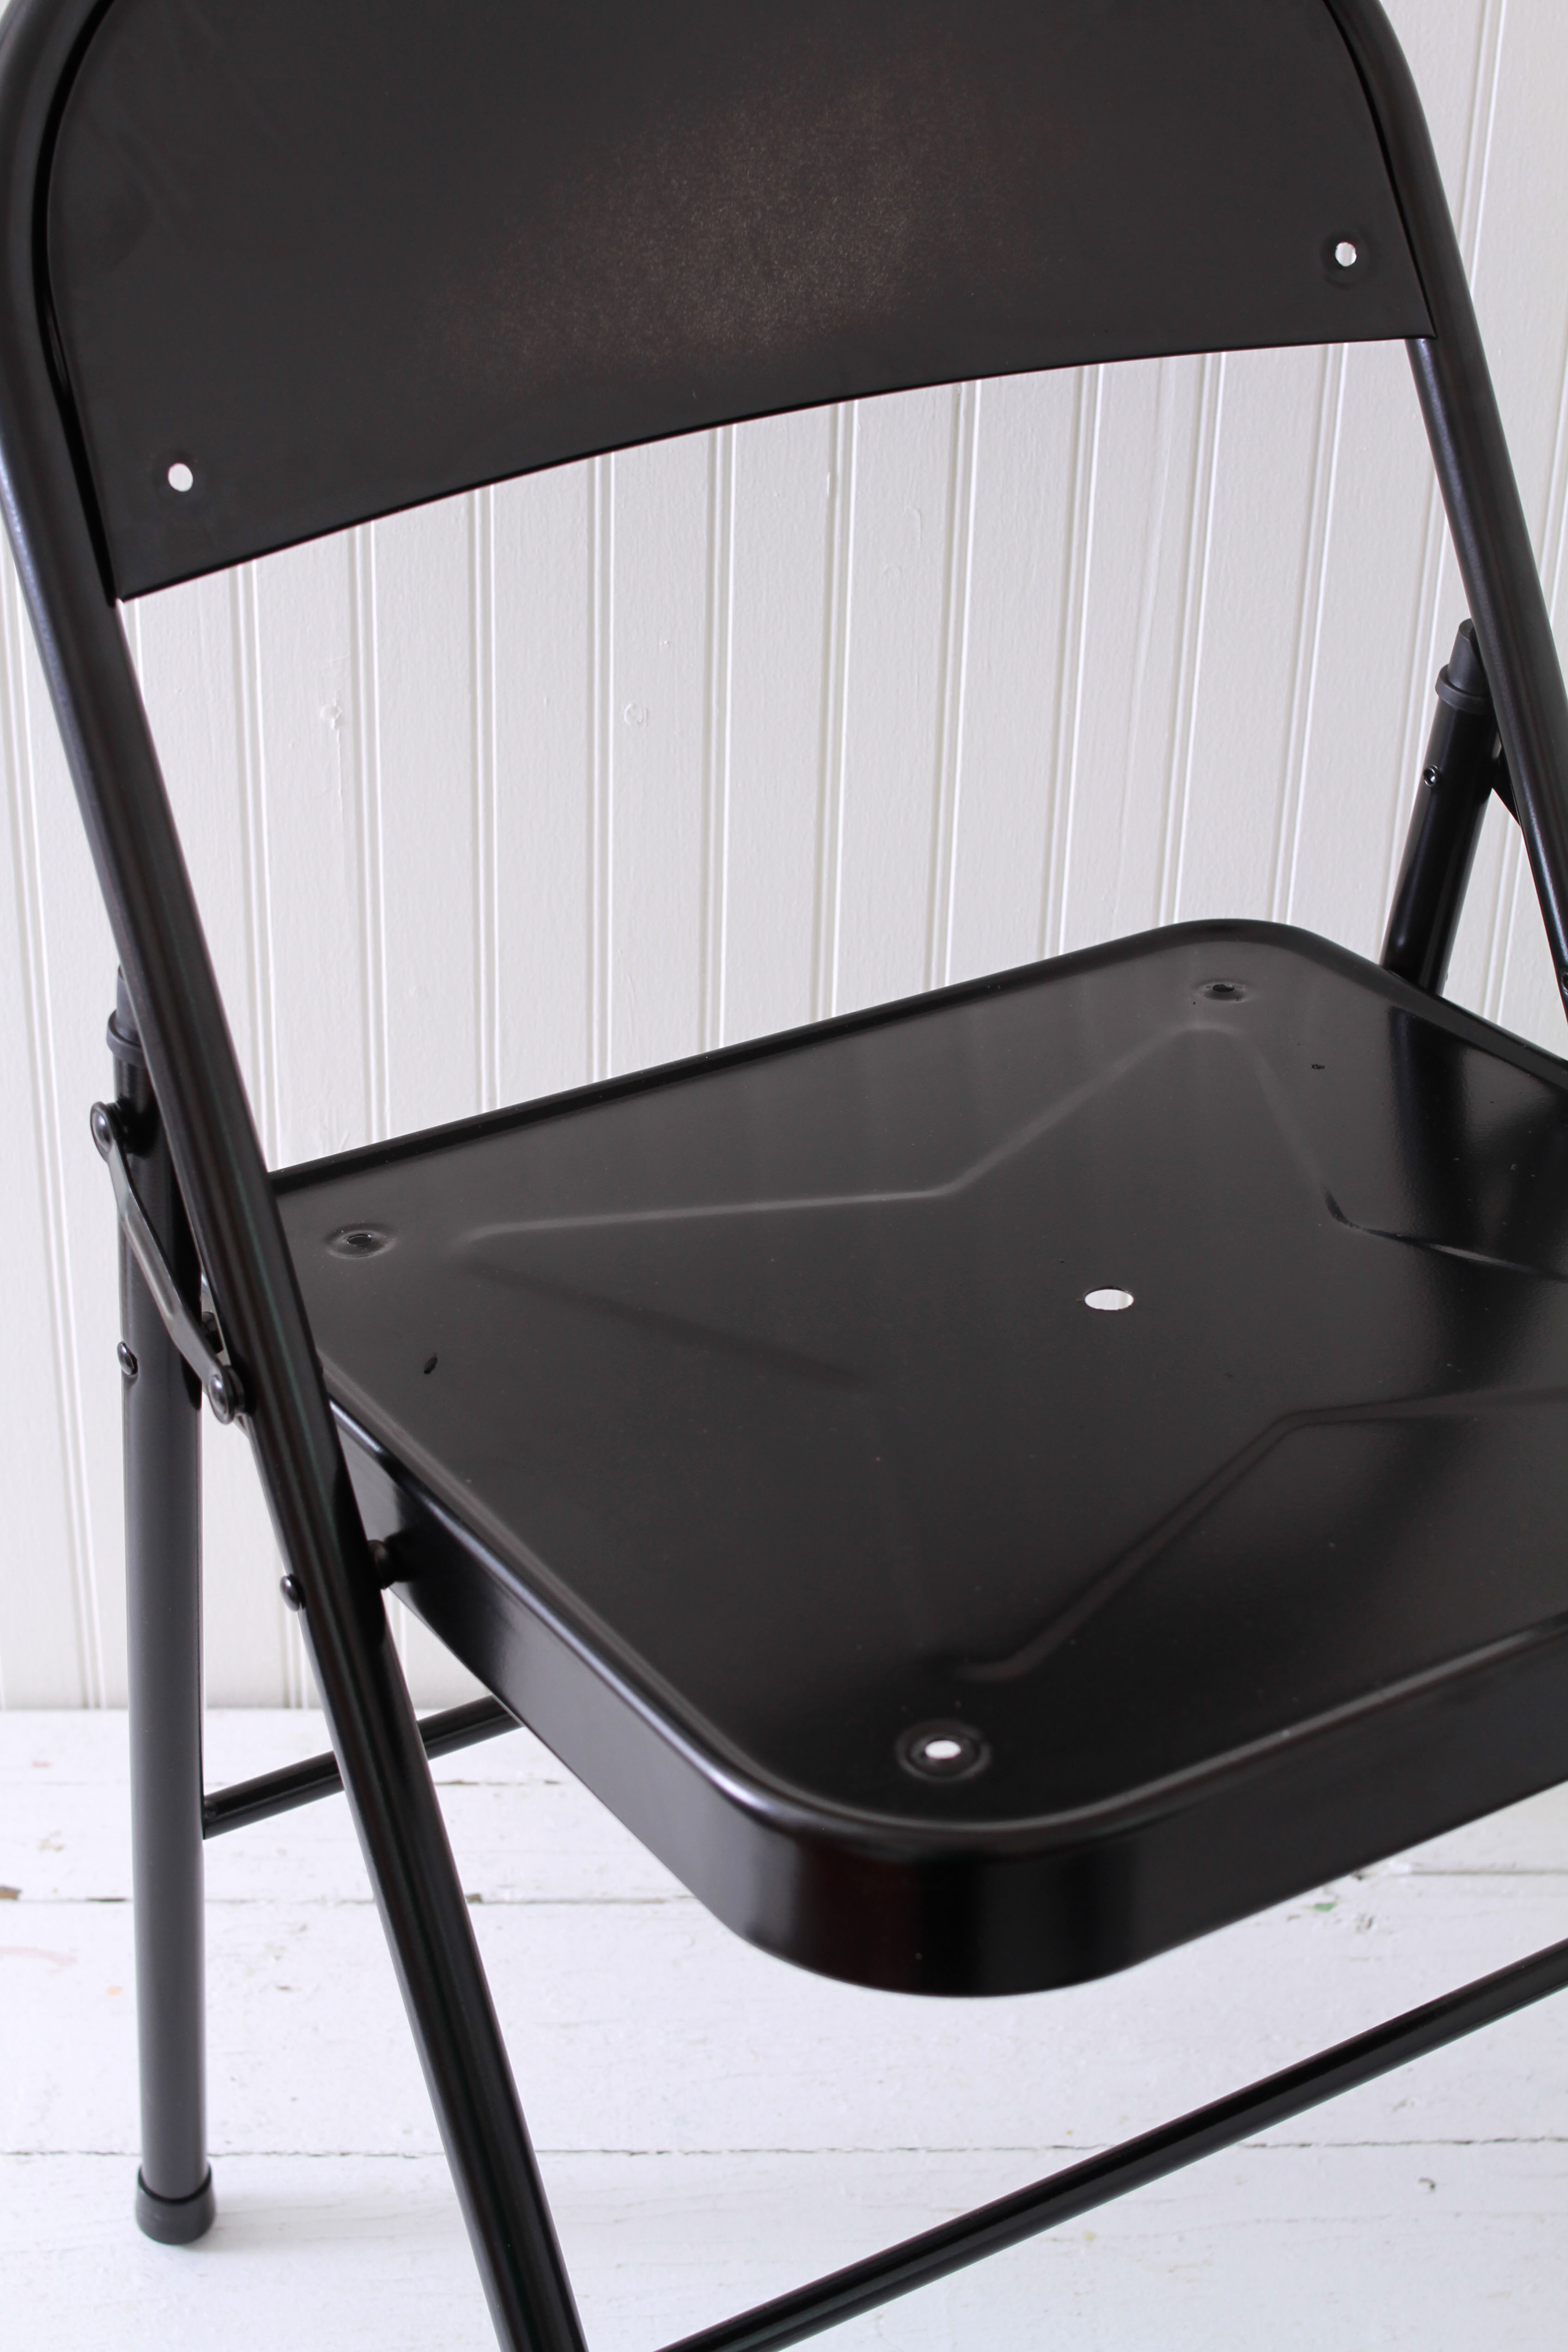 unscrewing the seat pads and backing on a folding chair